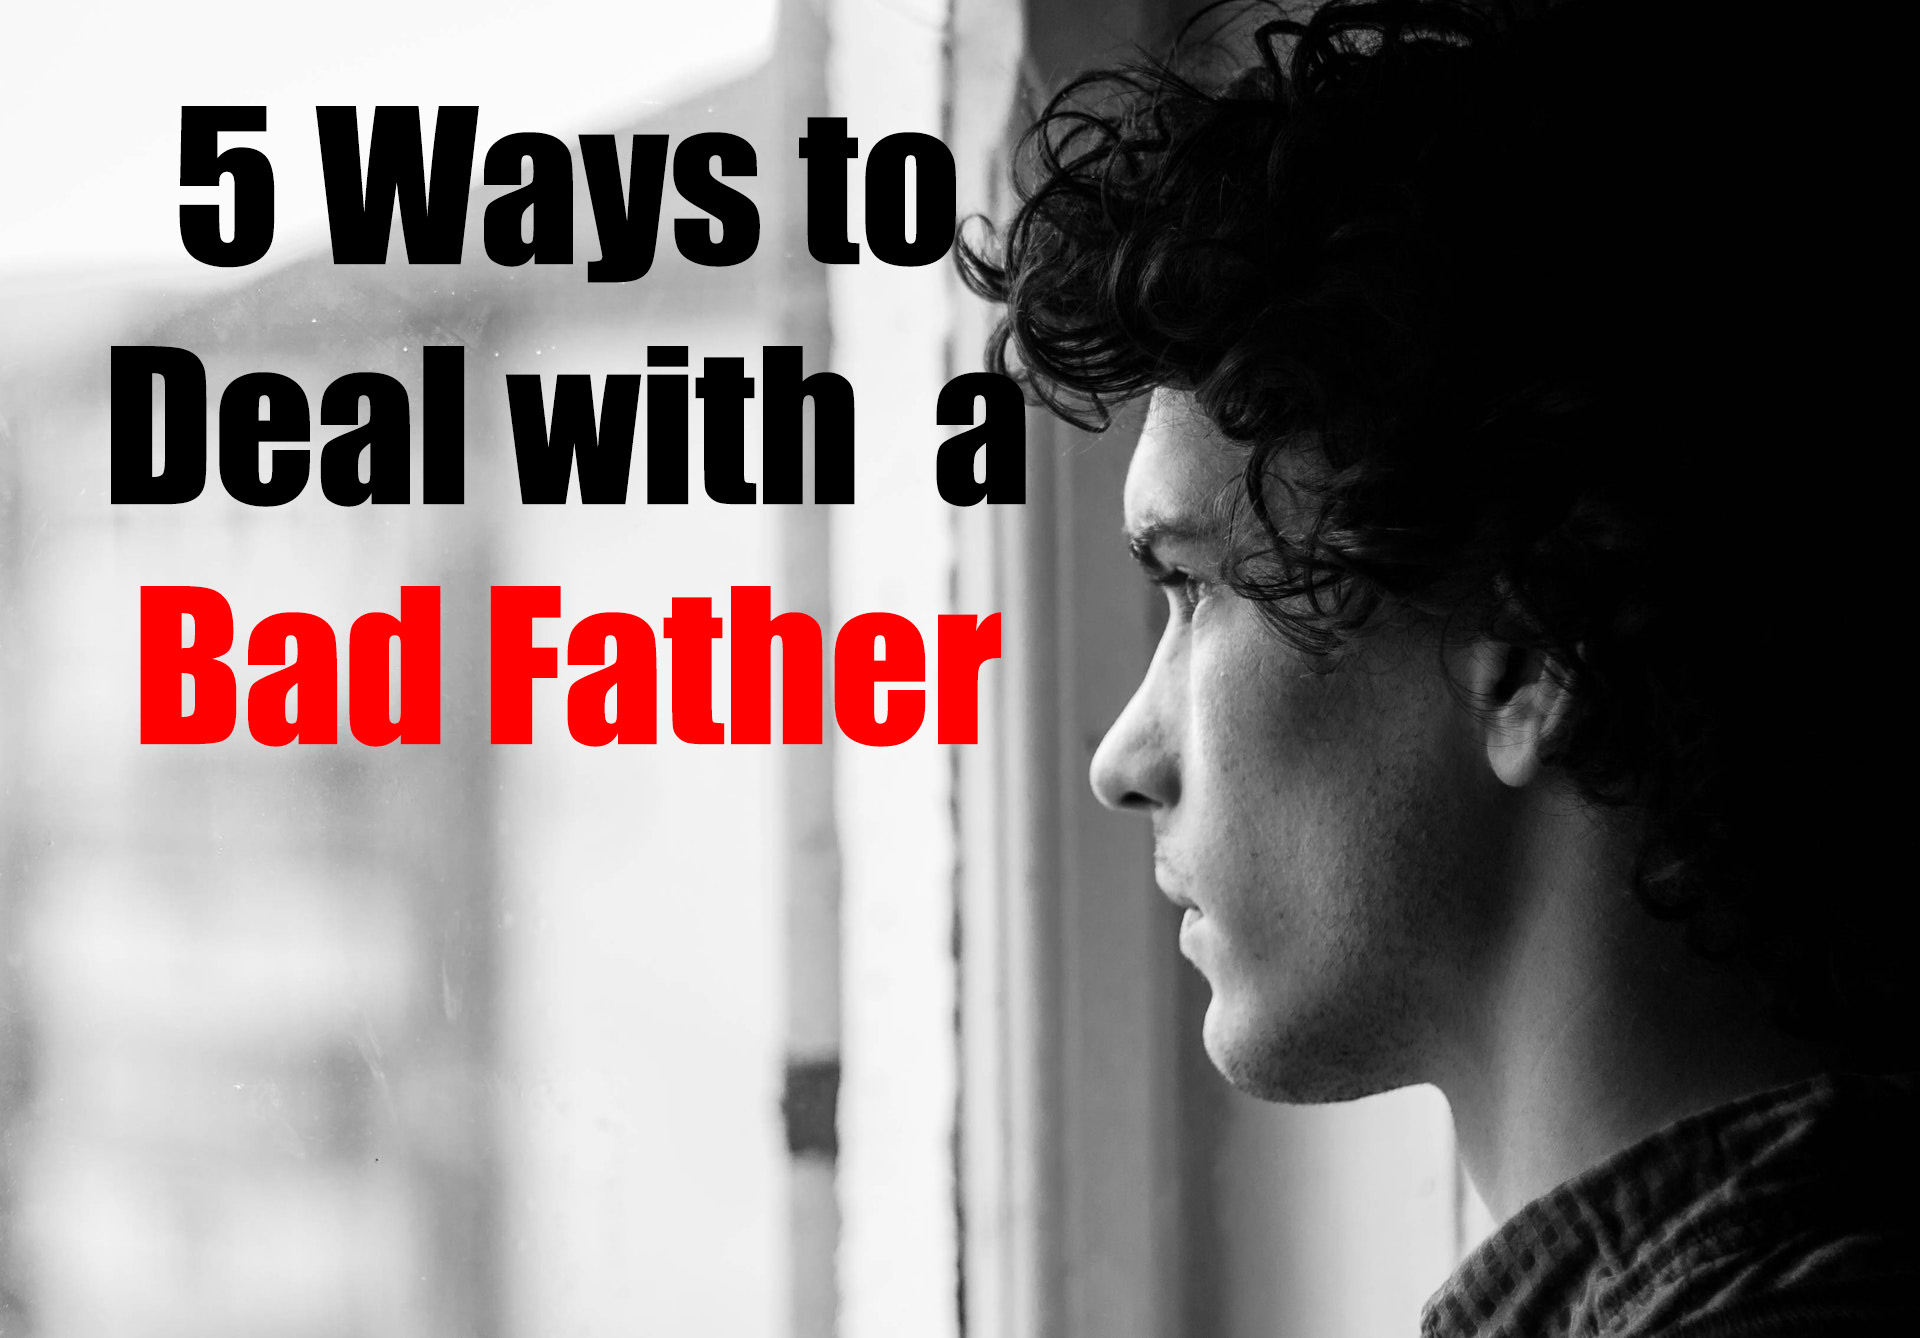 How to Deal with a Bad Father